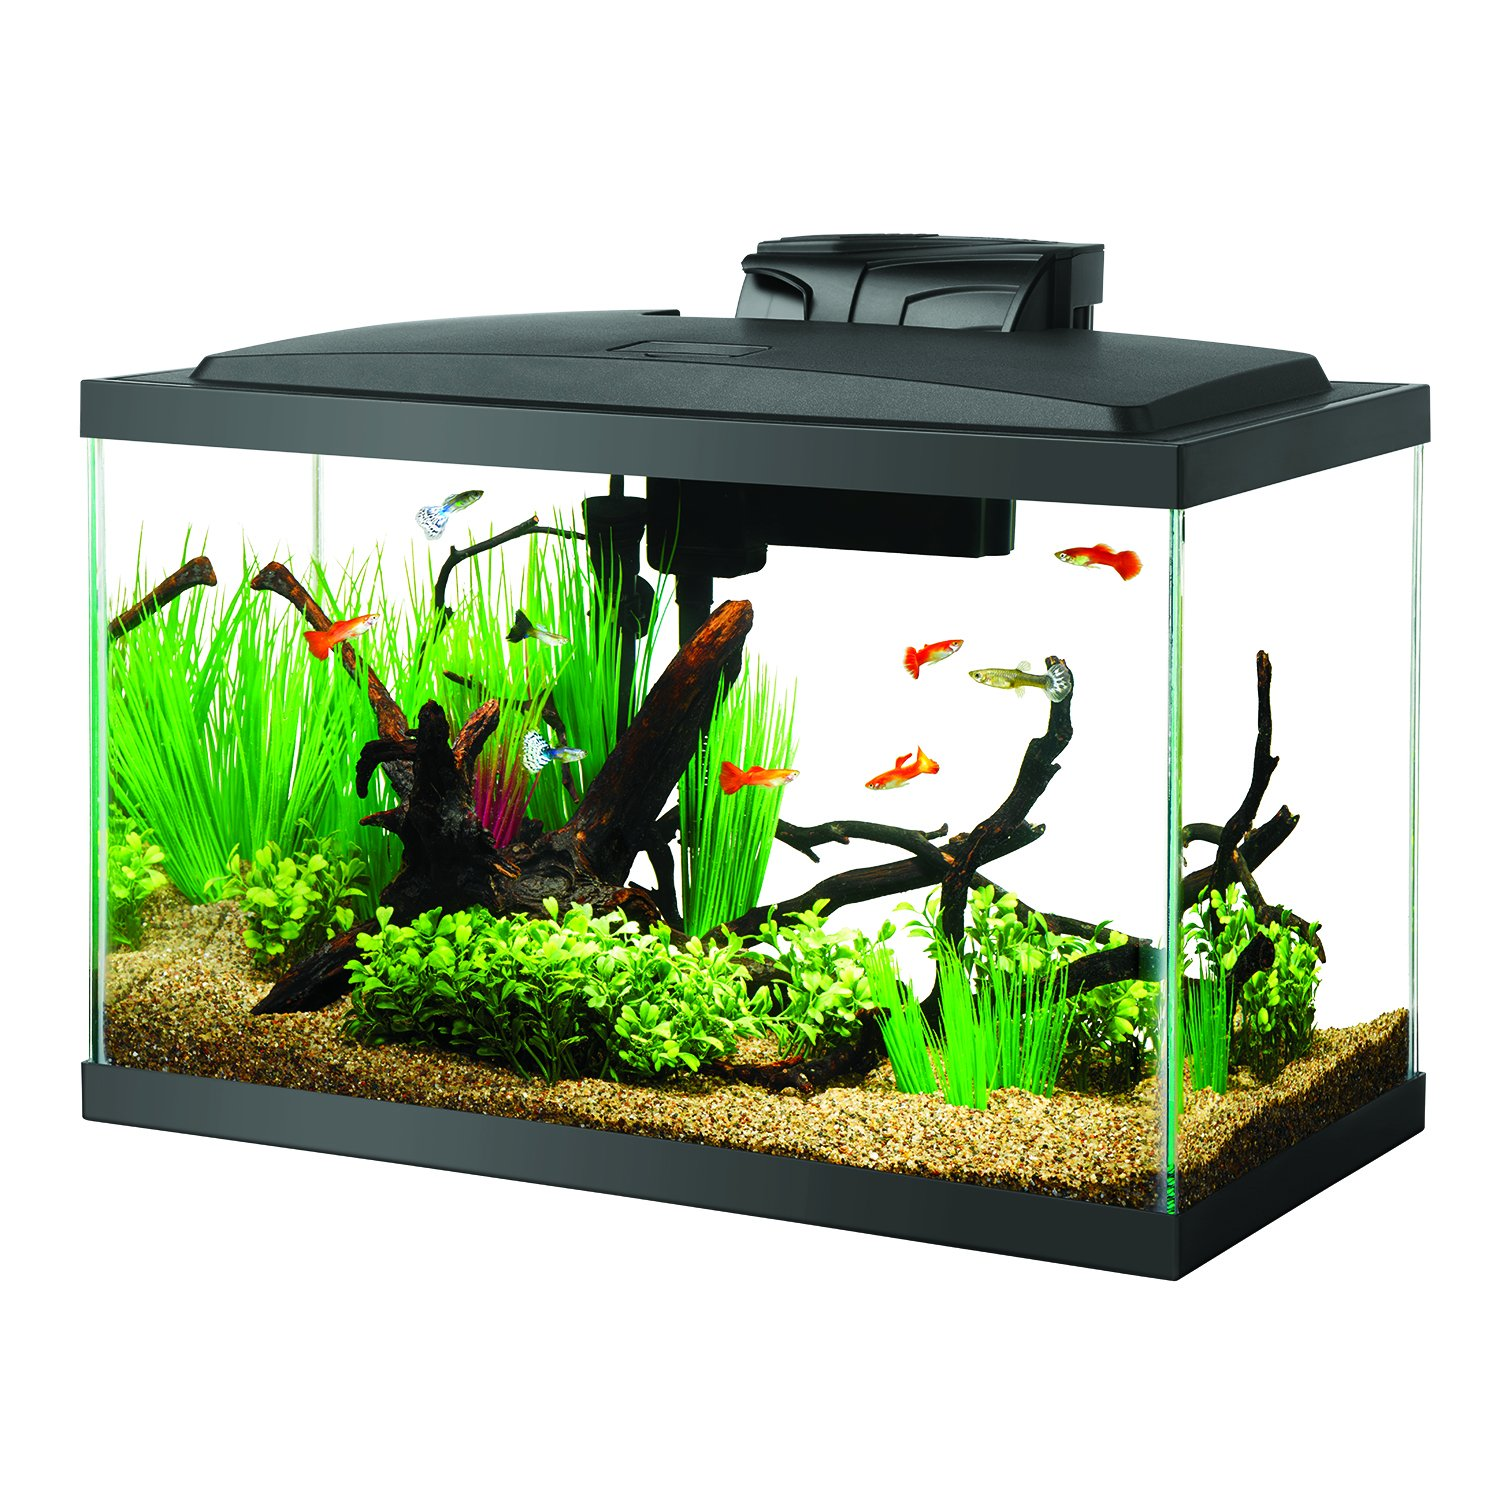 Aquarium fish tank price - Amazon Com Aqueon Fish Aquarium Starter Kit Led 10 Gallon Pet Supplies